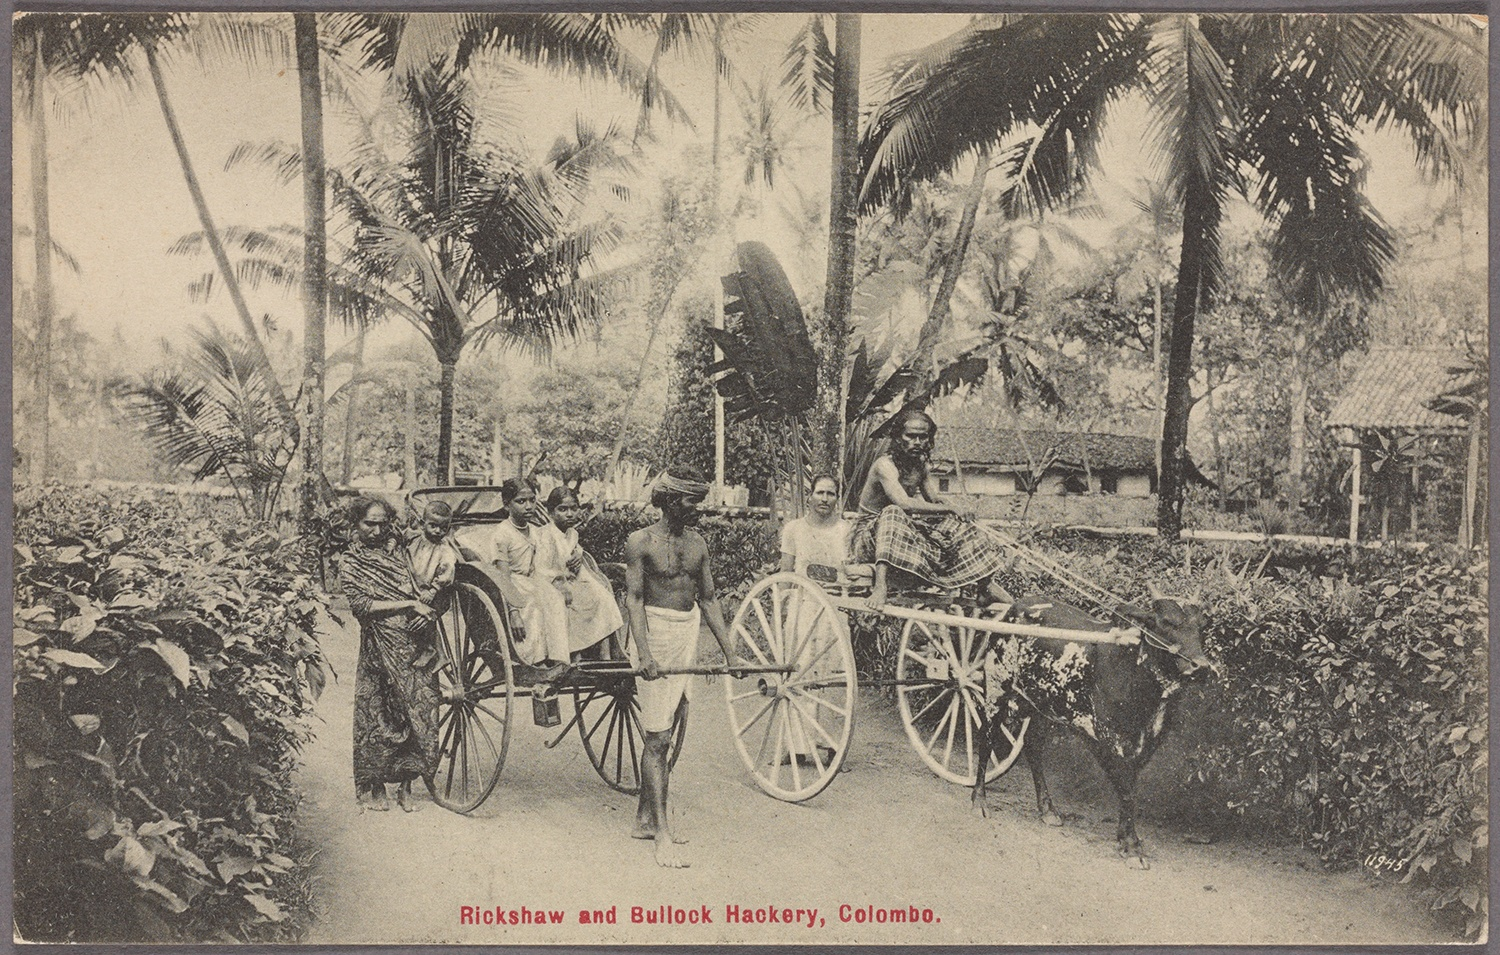 Rickshaw drivers and passengers in Colombo, c. 1910. Courtesy of the New York Public Library.